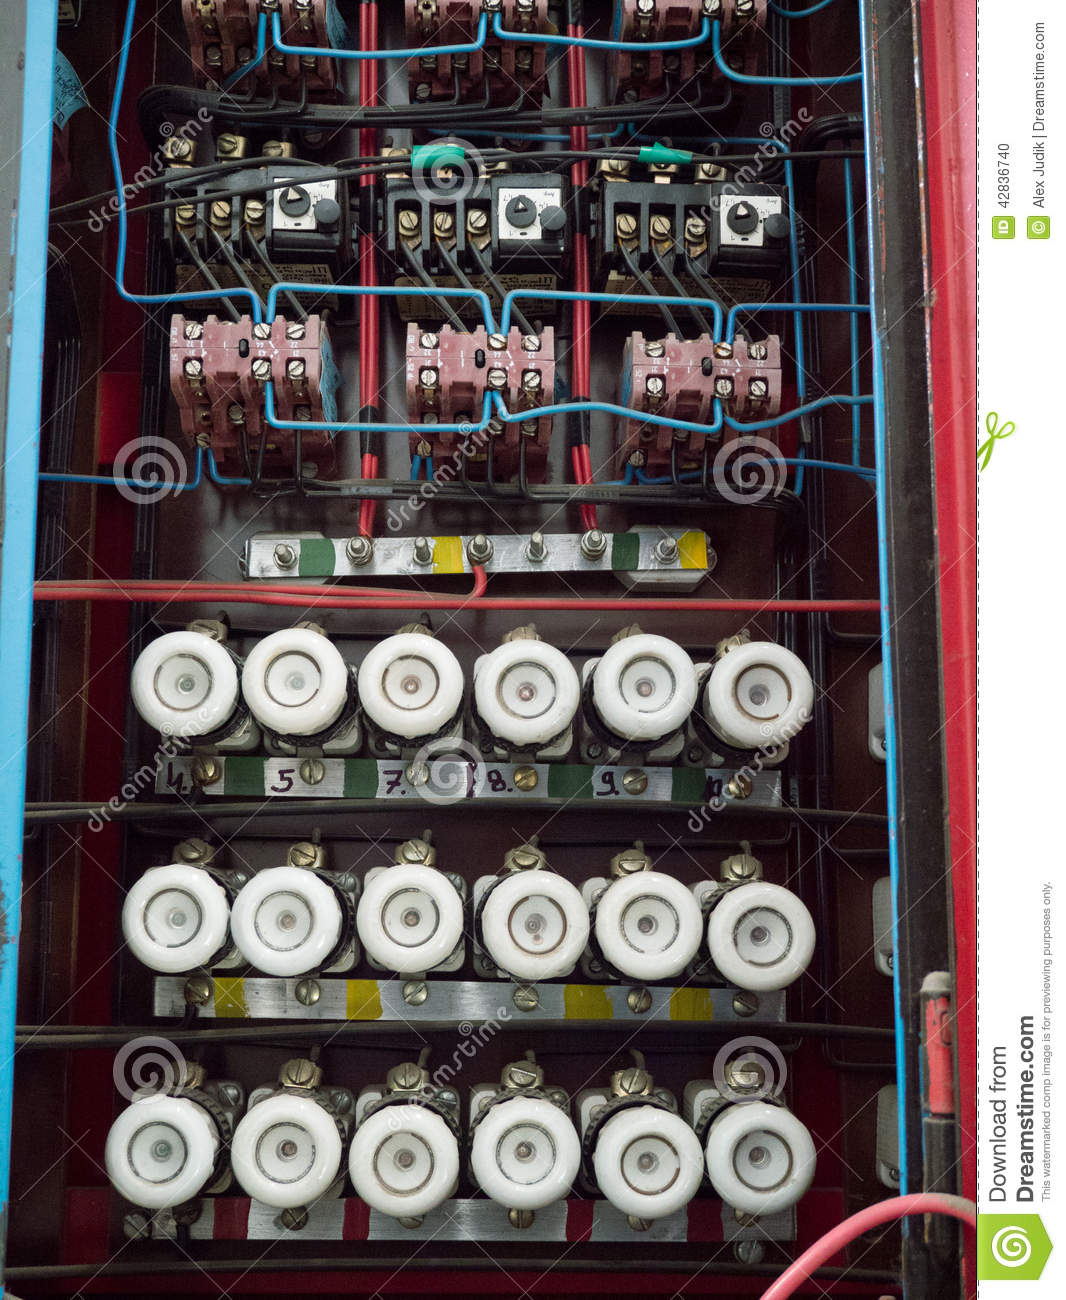 hight resolution of old fuse box on the wall stock photo image of electrics apartment has an old fuse box apartment has an old fuse box